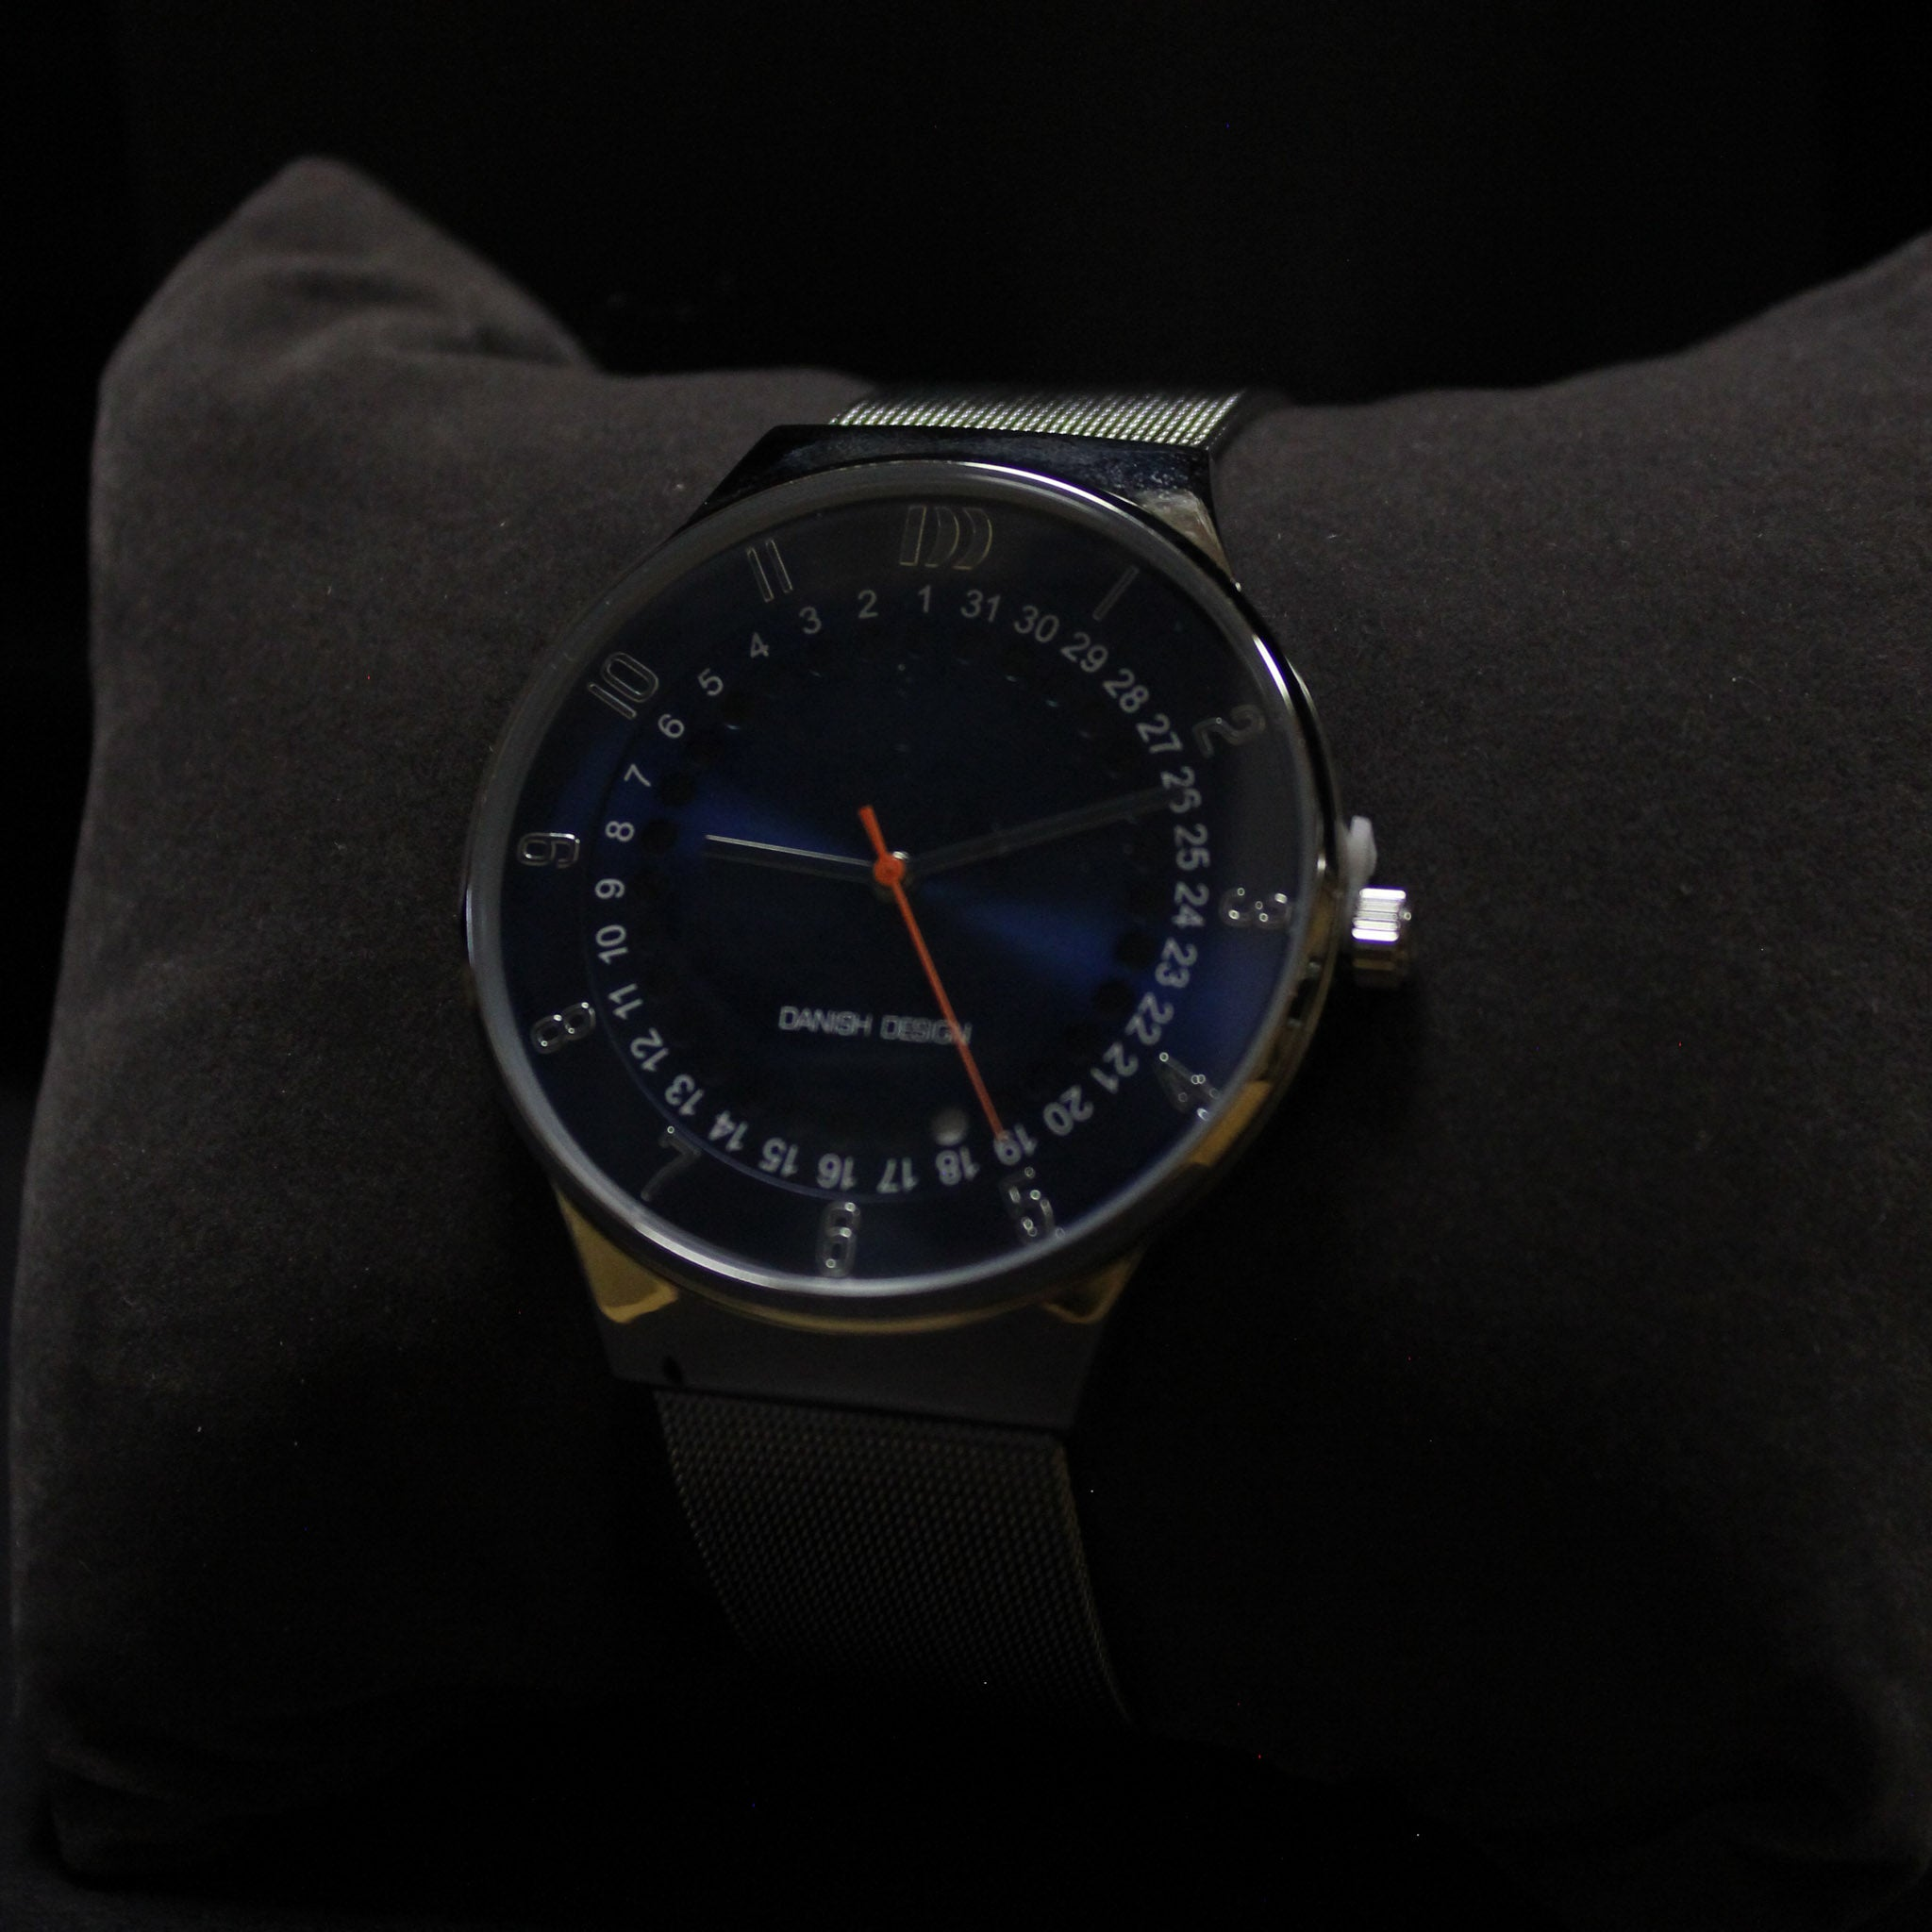 The New Yorker - Blue Stainless Steel Mesh Band Watch | Danish Design